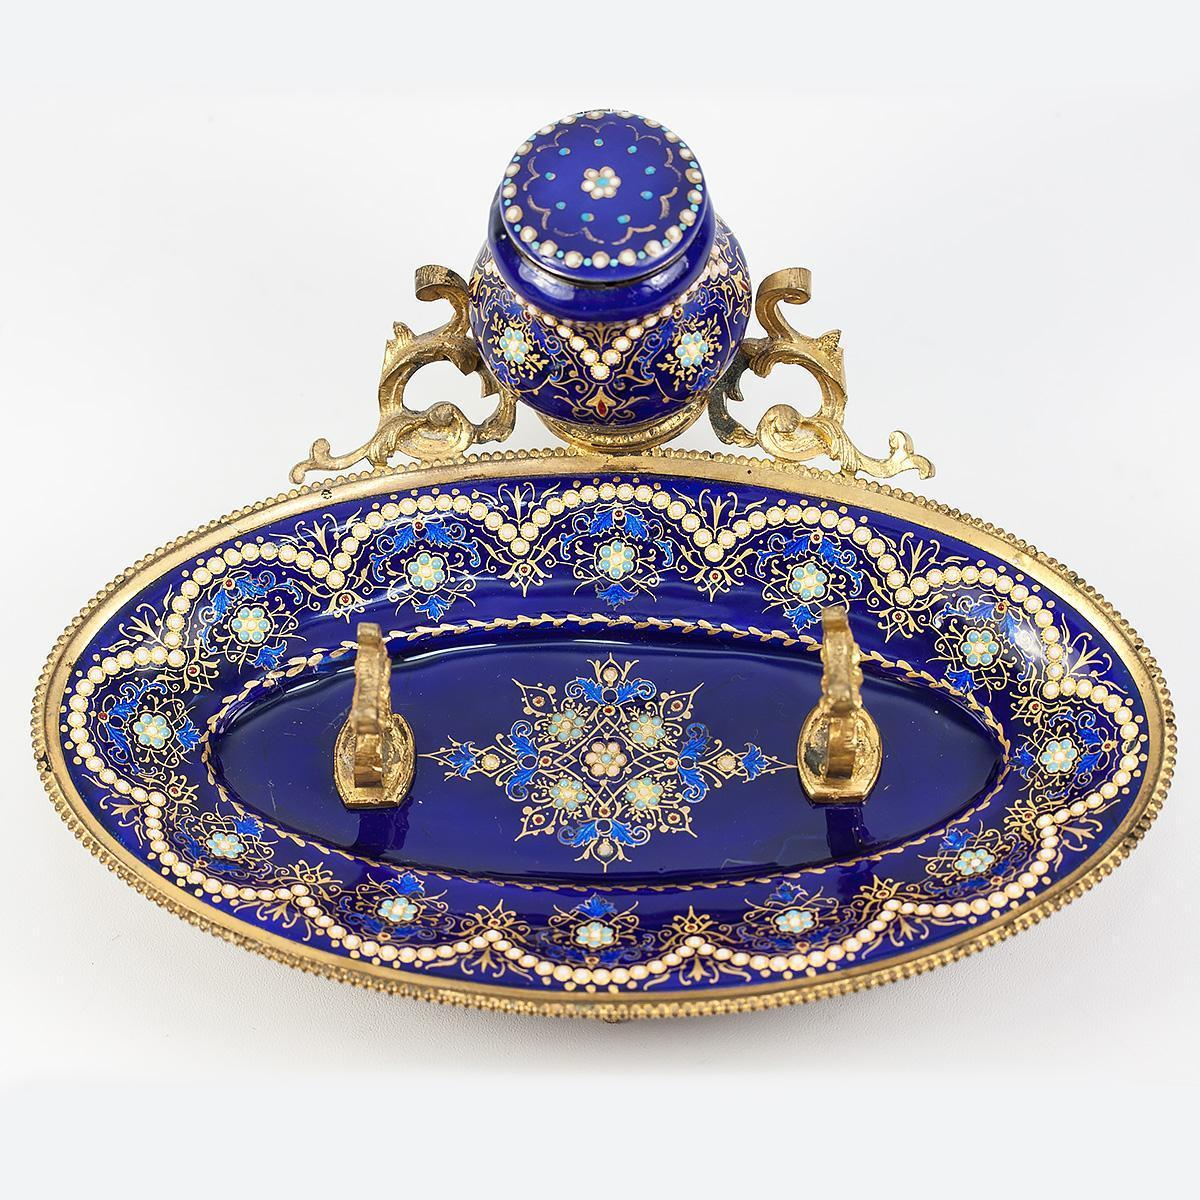 Antique French Kiln-fired Bresse Enamel Inkwell, Ink Well, Ink Pot, Cobalt Blue, Jewel Dots